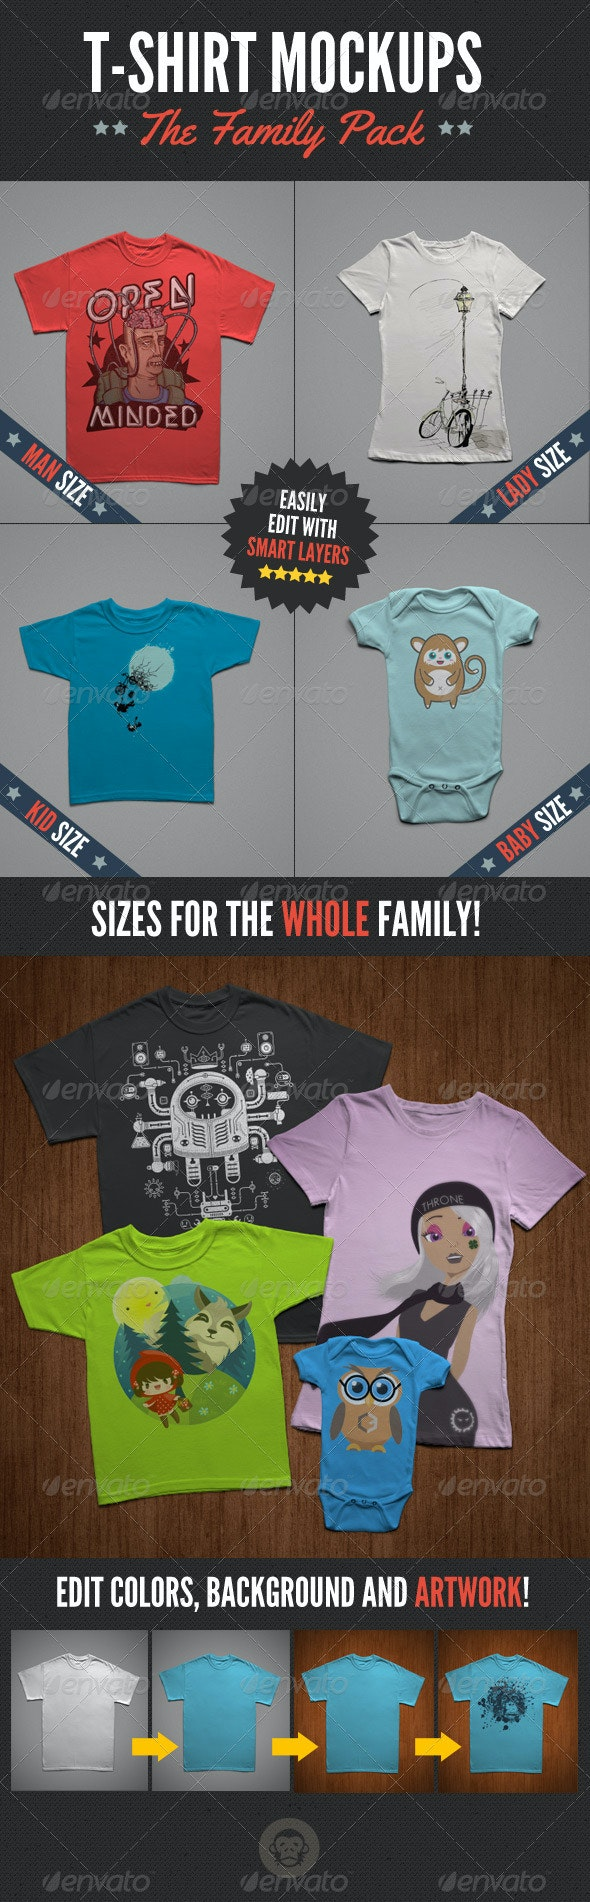 T-Shirt Mock-Ups - Family Pack - T-shirts Apparel